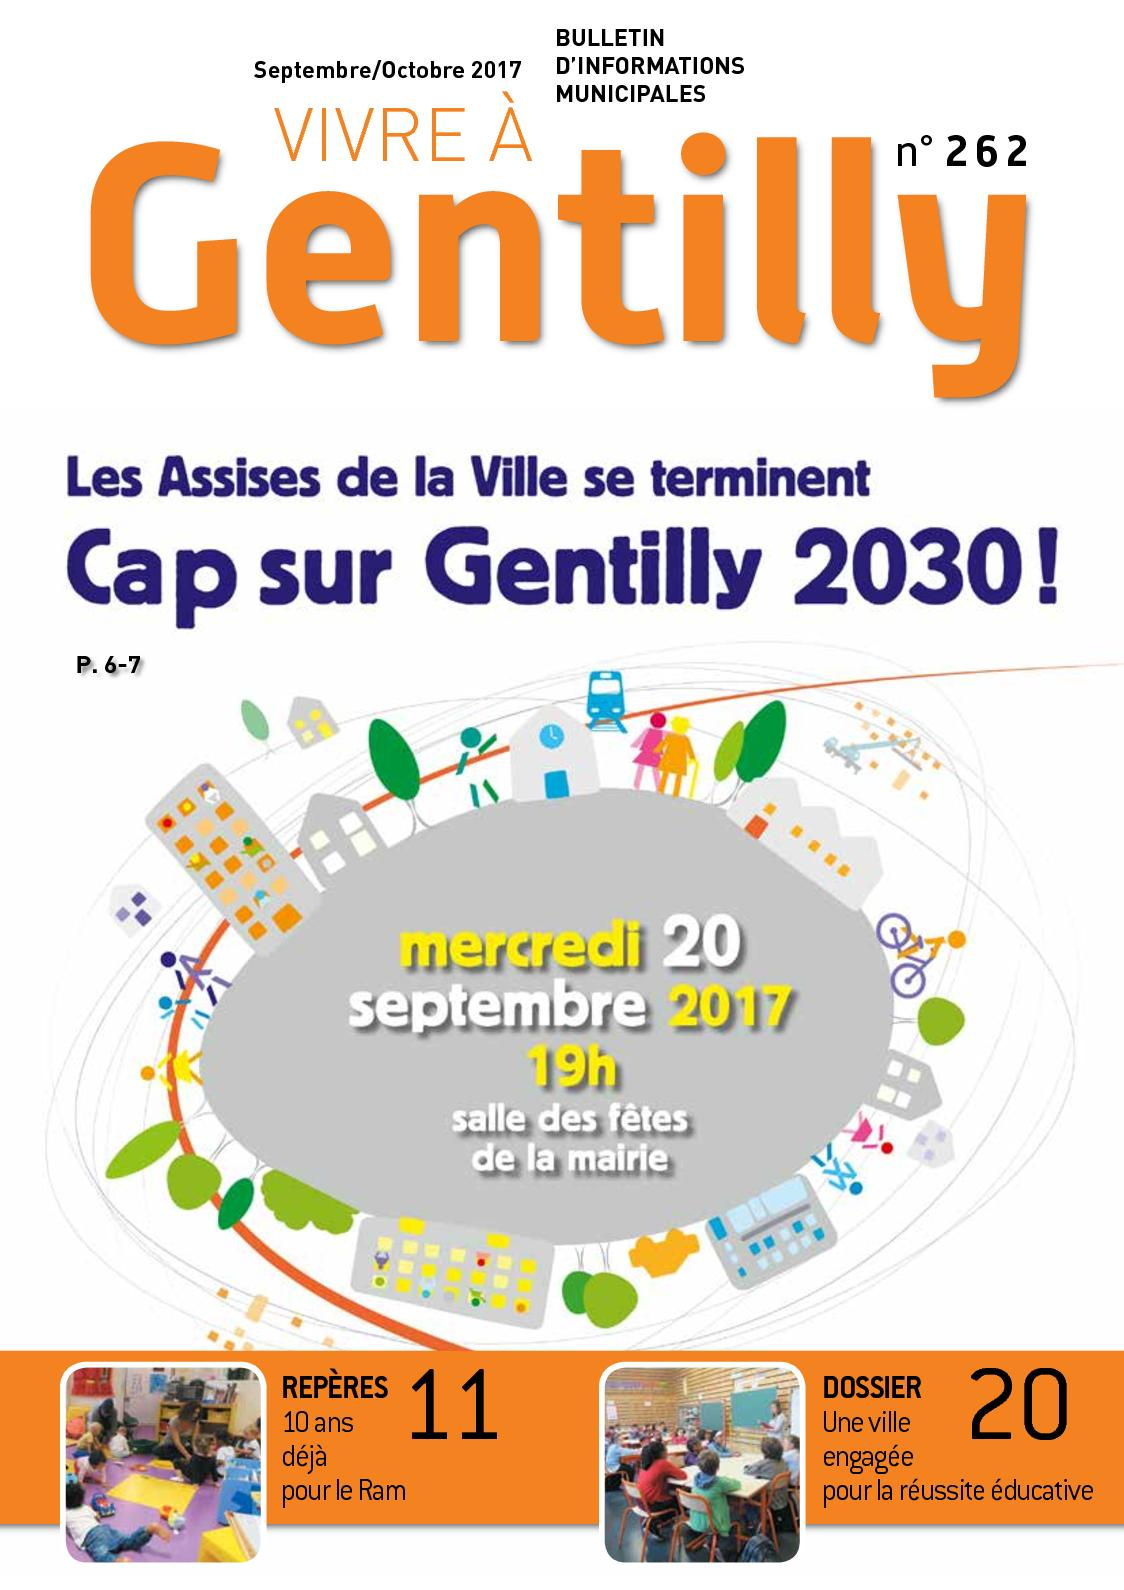 rencontre gentilly